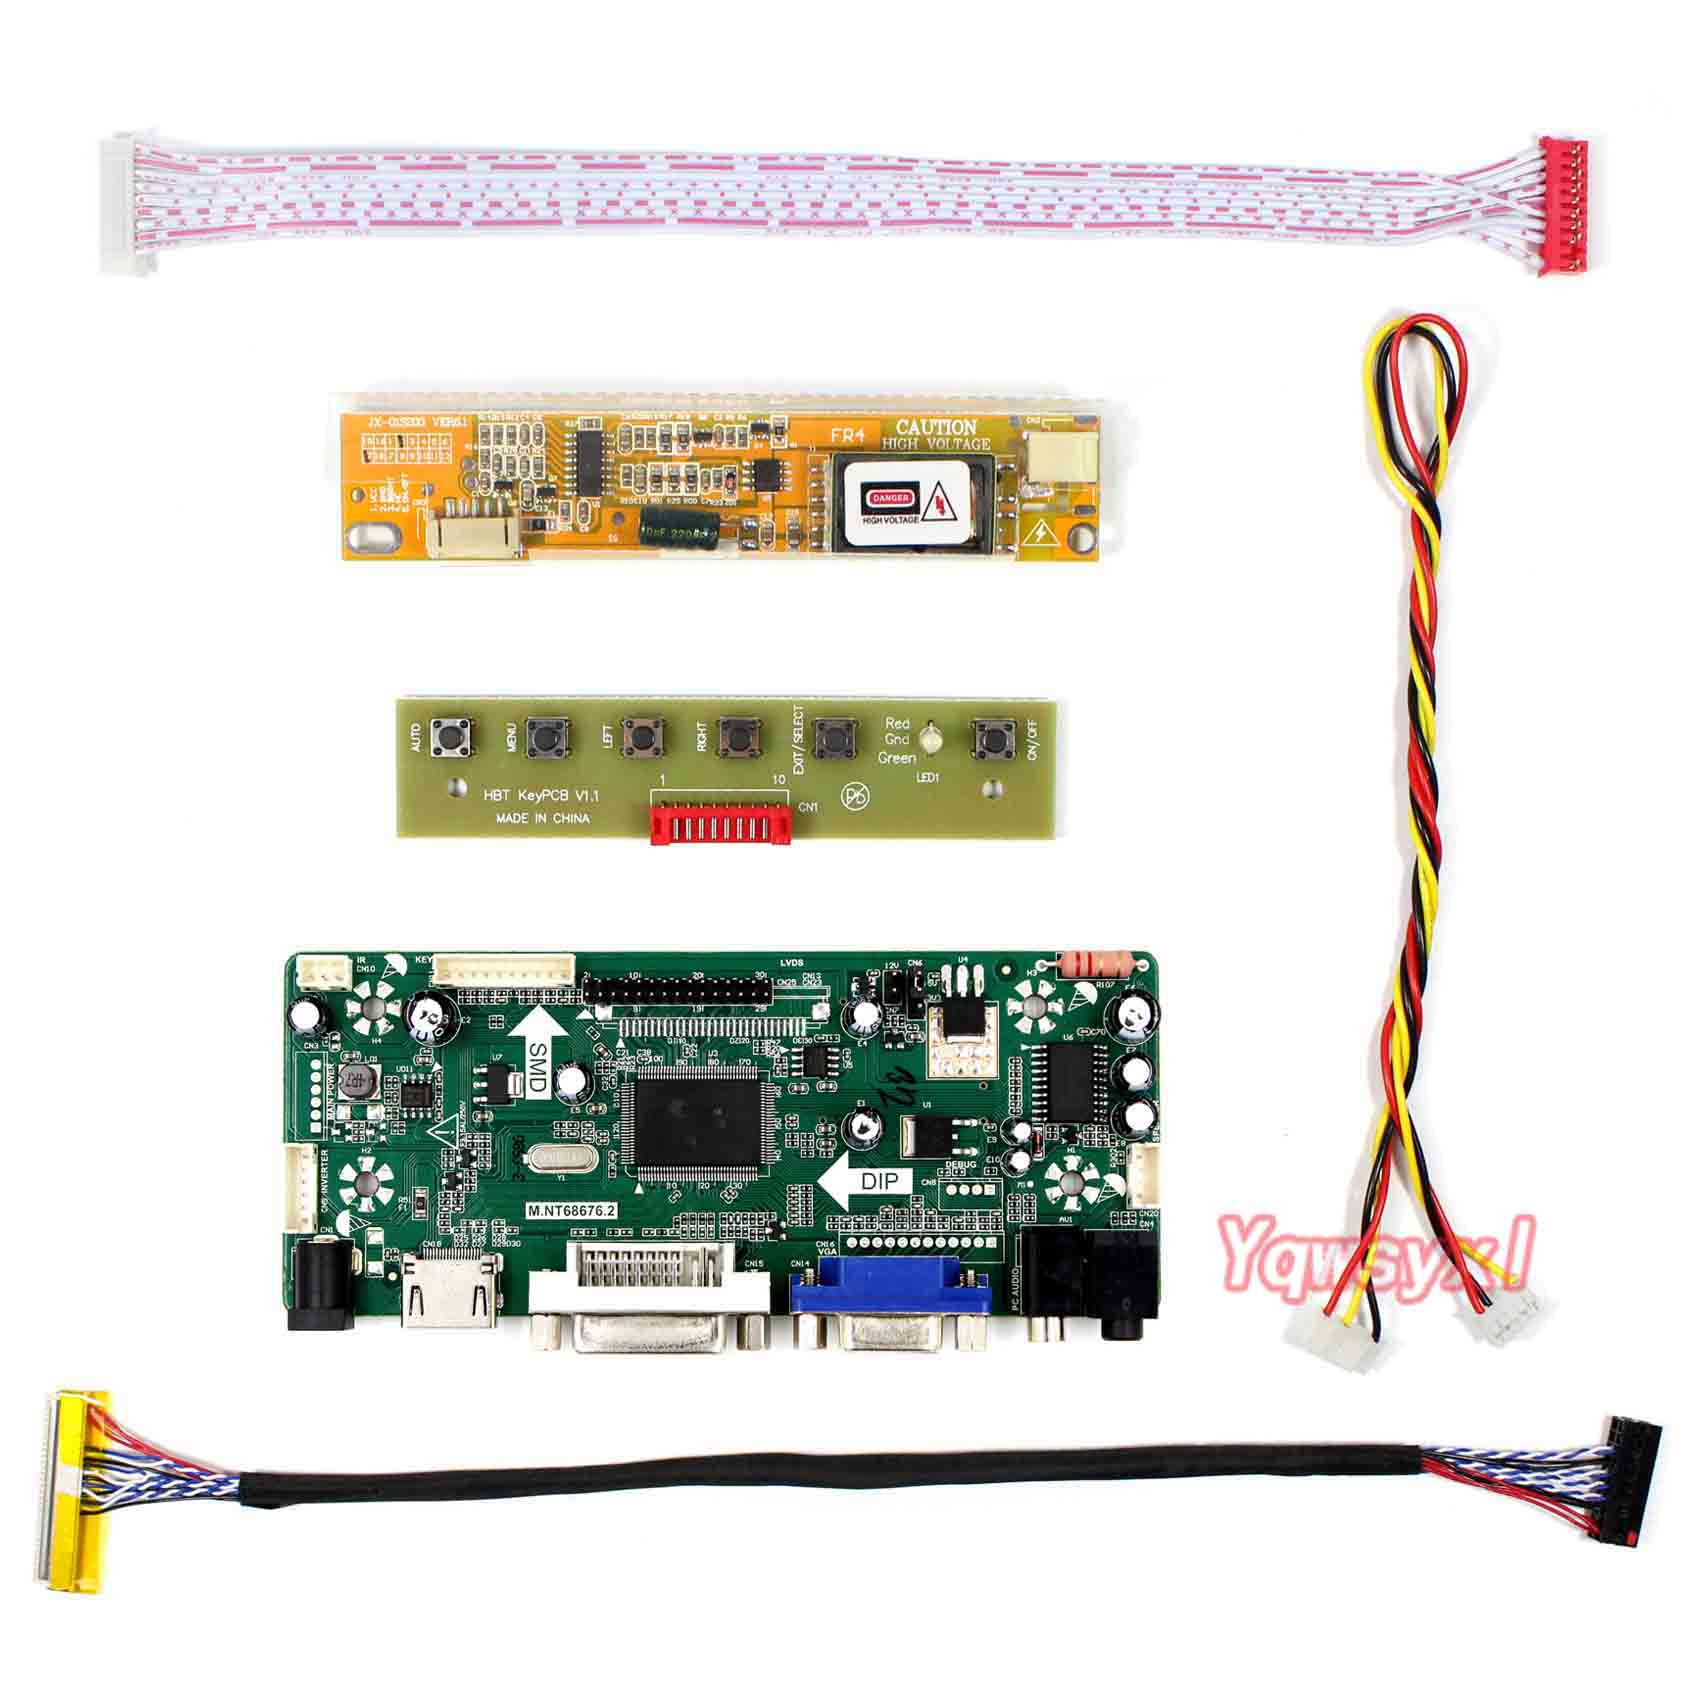 Yqwsyxl Control Board Monitor Kit For B141EW03 V3  B141EW03 VB  HDMI + DVI + VGA LCD LED Screen Controller Board Driver